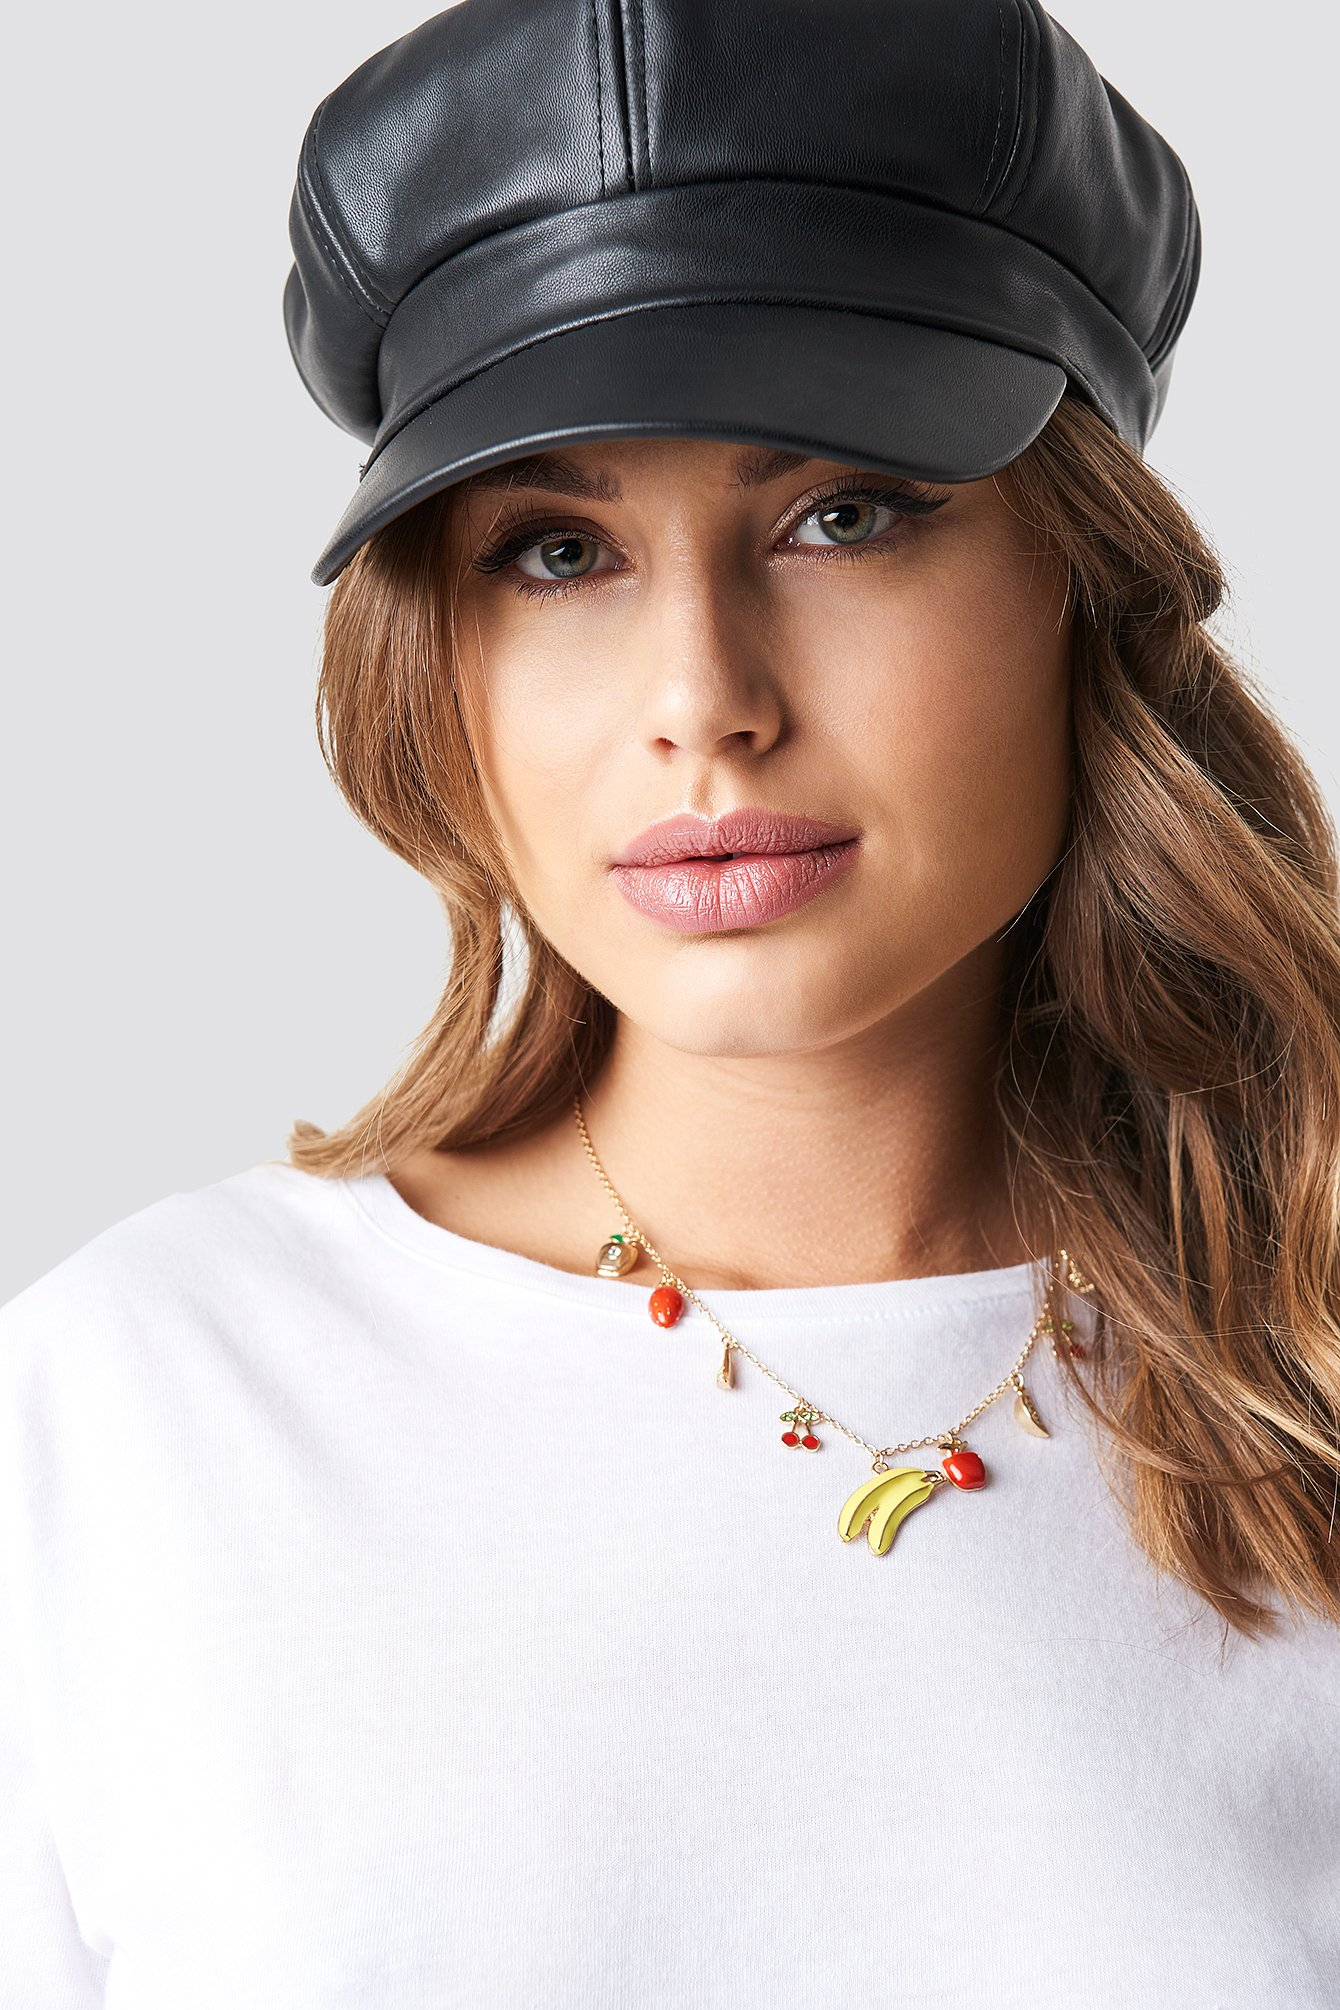 The Mixed Fruits Necklace by NA-KD Accessories features a thin chain, an adjustable clasp closure, and one big banana pendant, surrounded by various smaller fruit pendants.